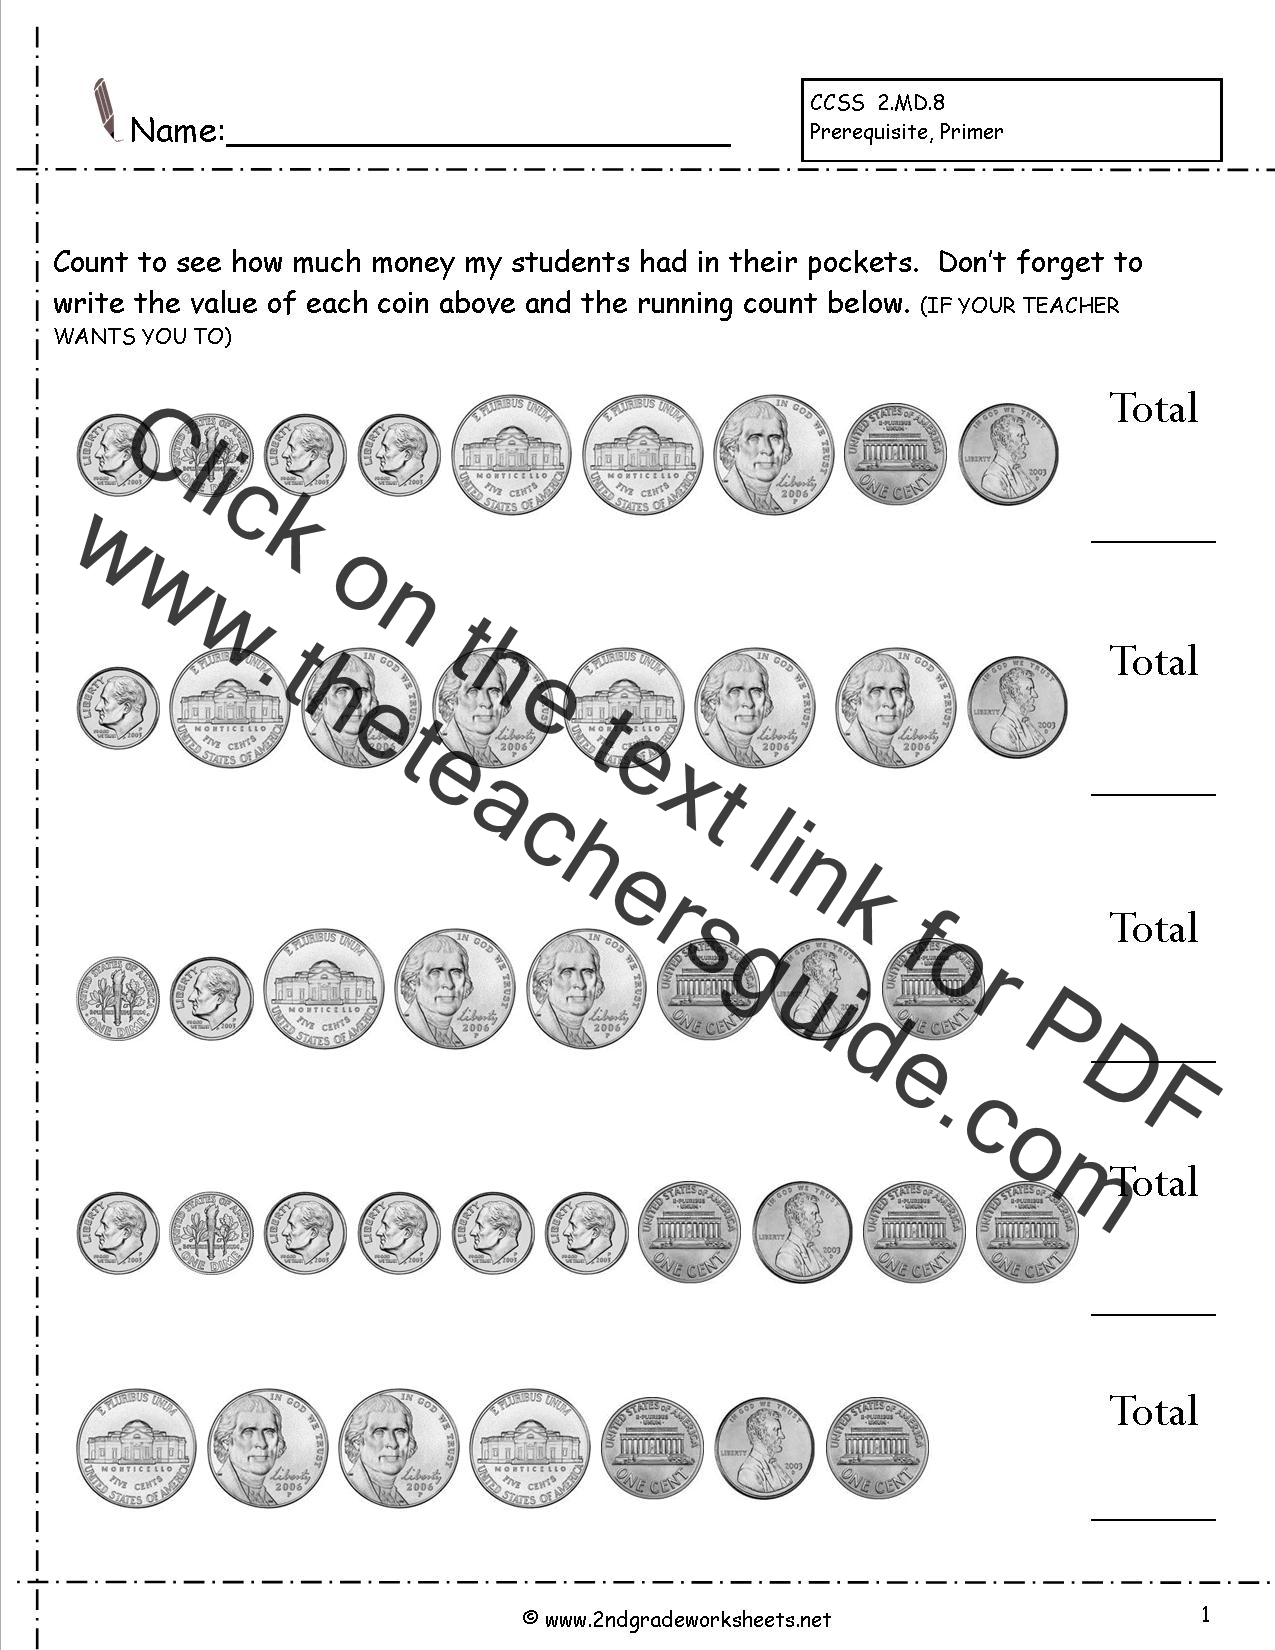 Free Math Worksheets and Printouts – Common Core 2nd Grade Math Worksheets